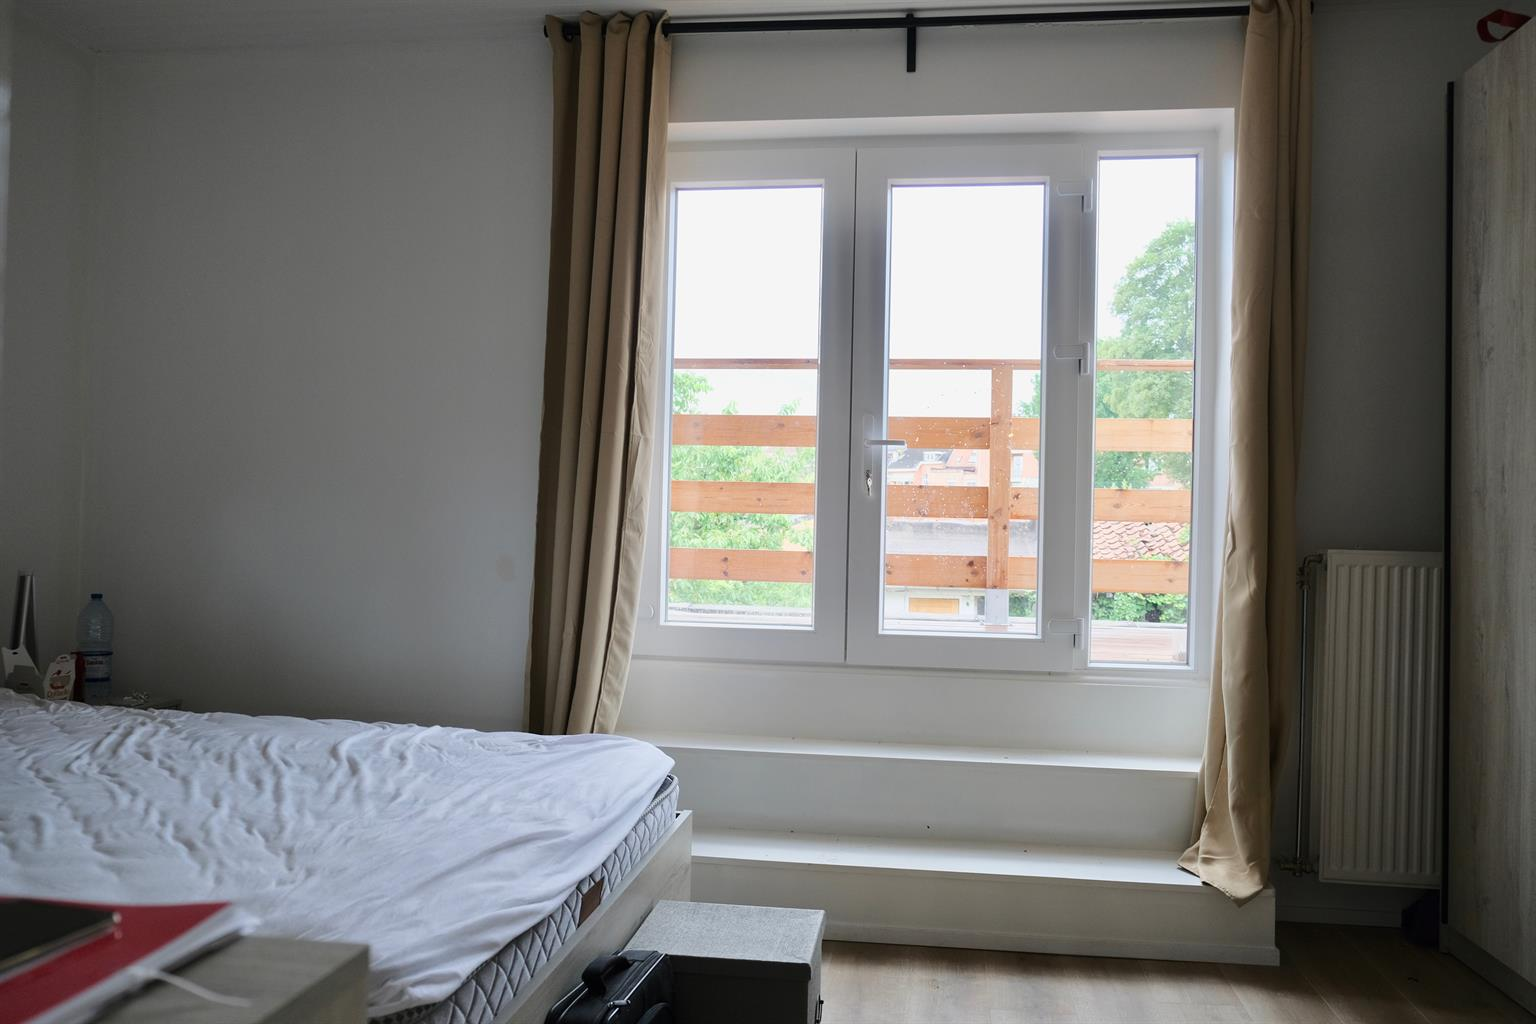 Appartement - Berchem-Sainte-Agathe - #4062915-8